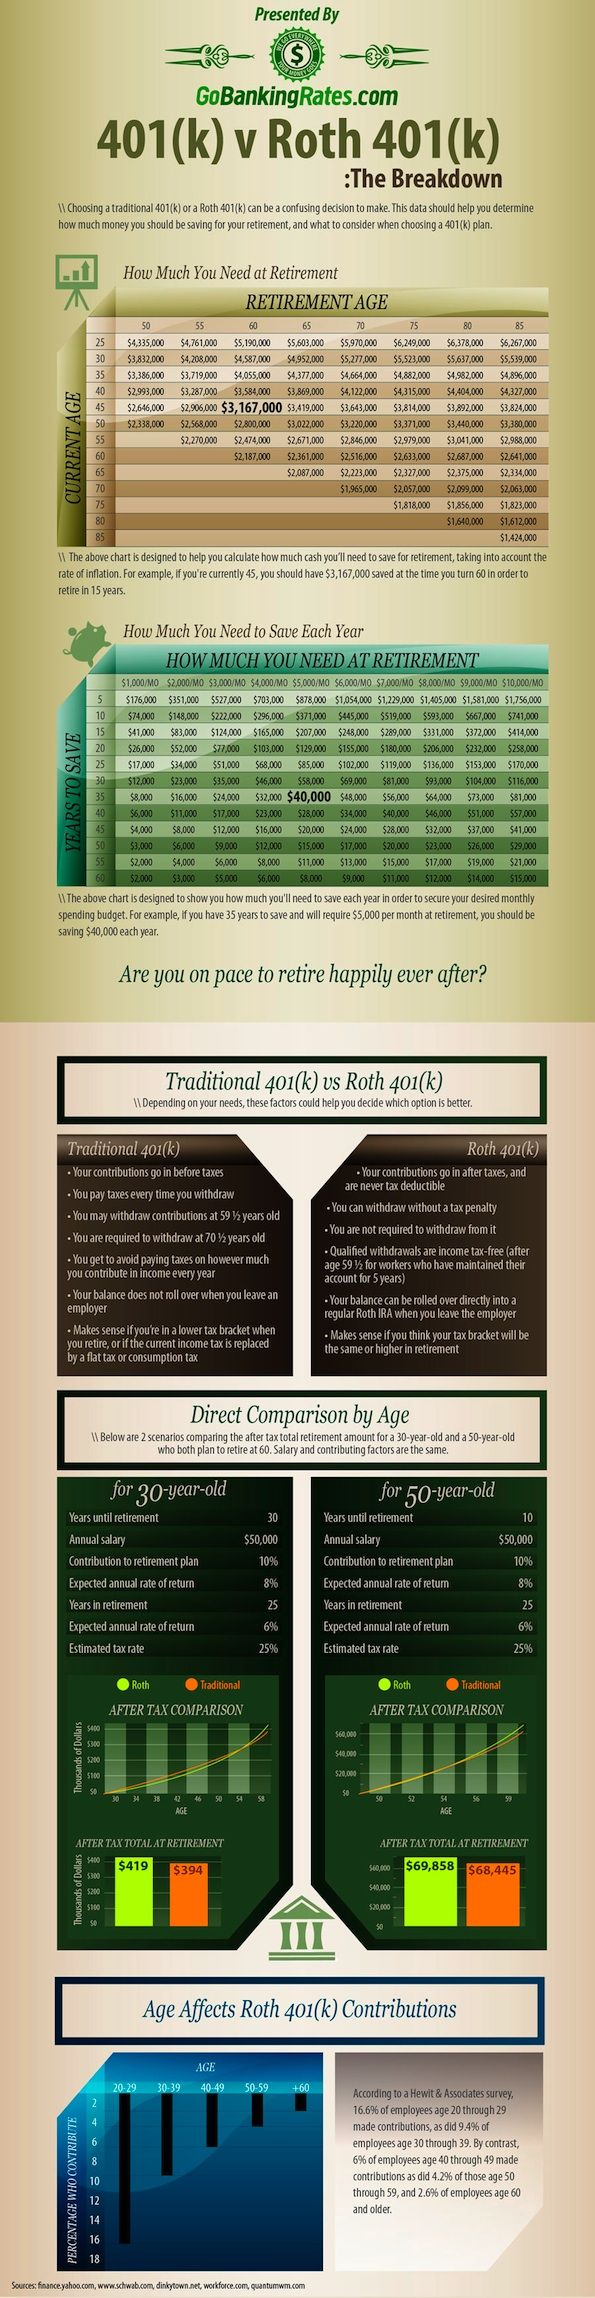 How Much Do You Need to Retire? Apparently I need to save $40,000/year. That's almost twice what I make!!!!!